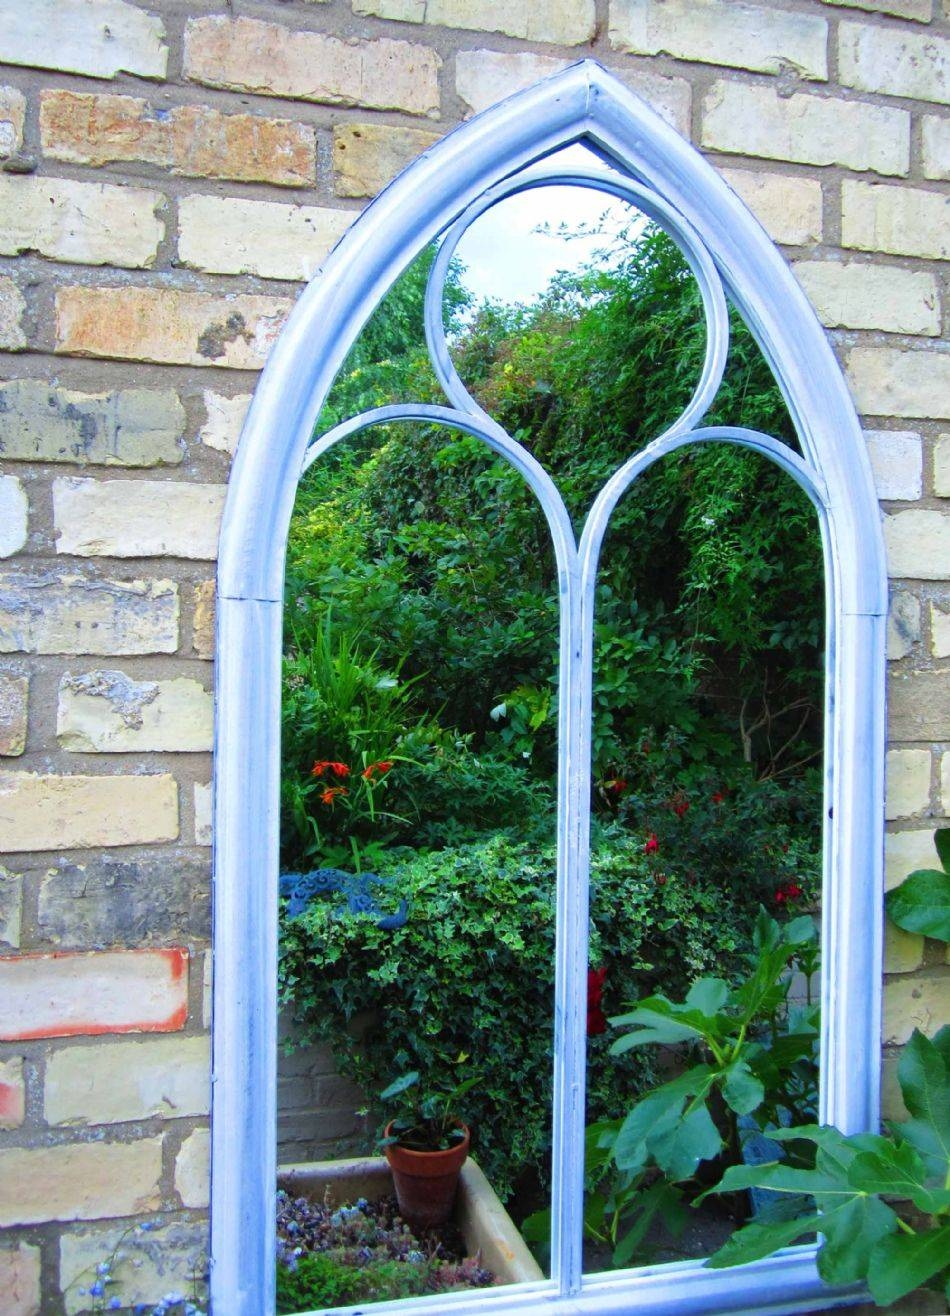 Gothic Arch Window Mirror 112Cm Tall pertaining to Garden Window Mirrors (Image 16 of 25)